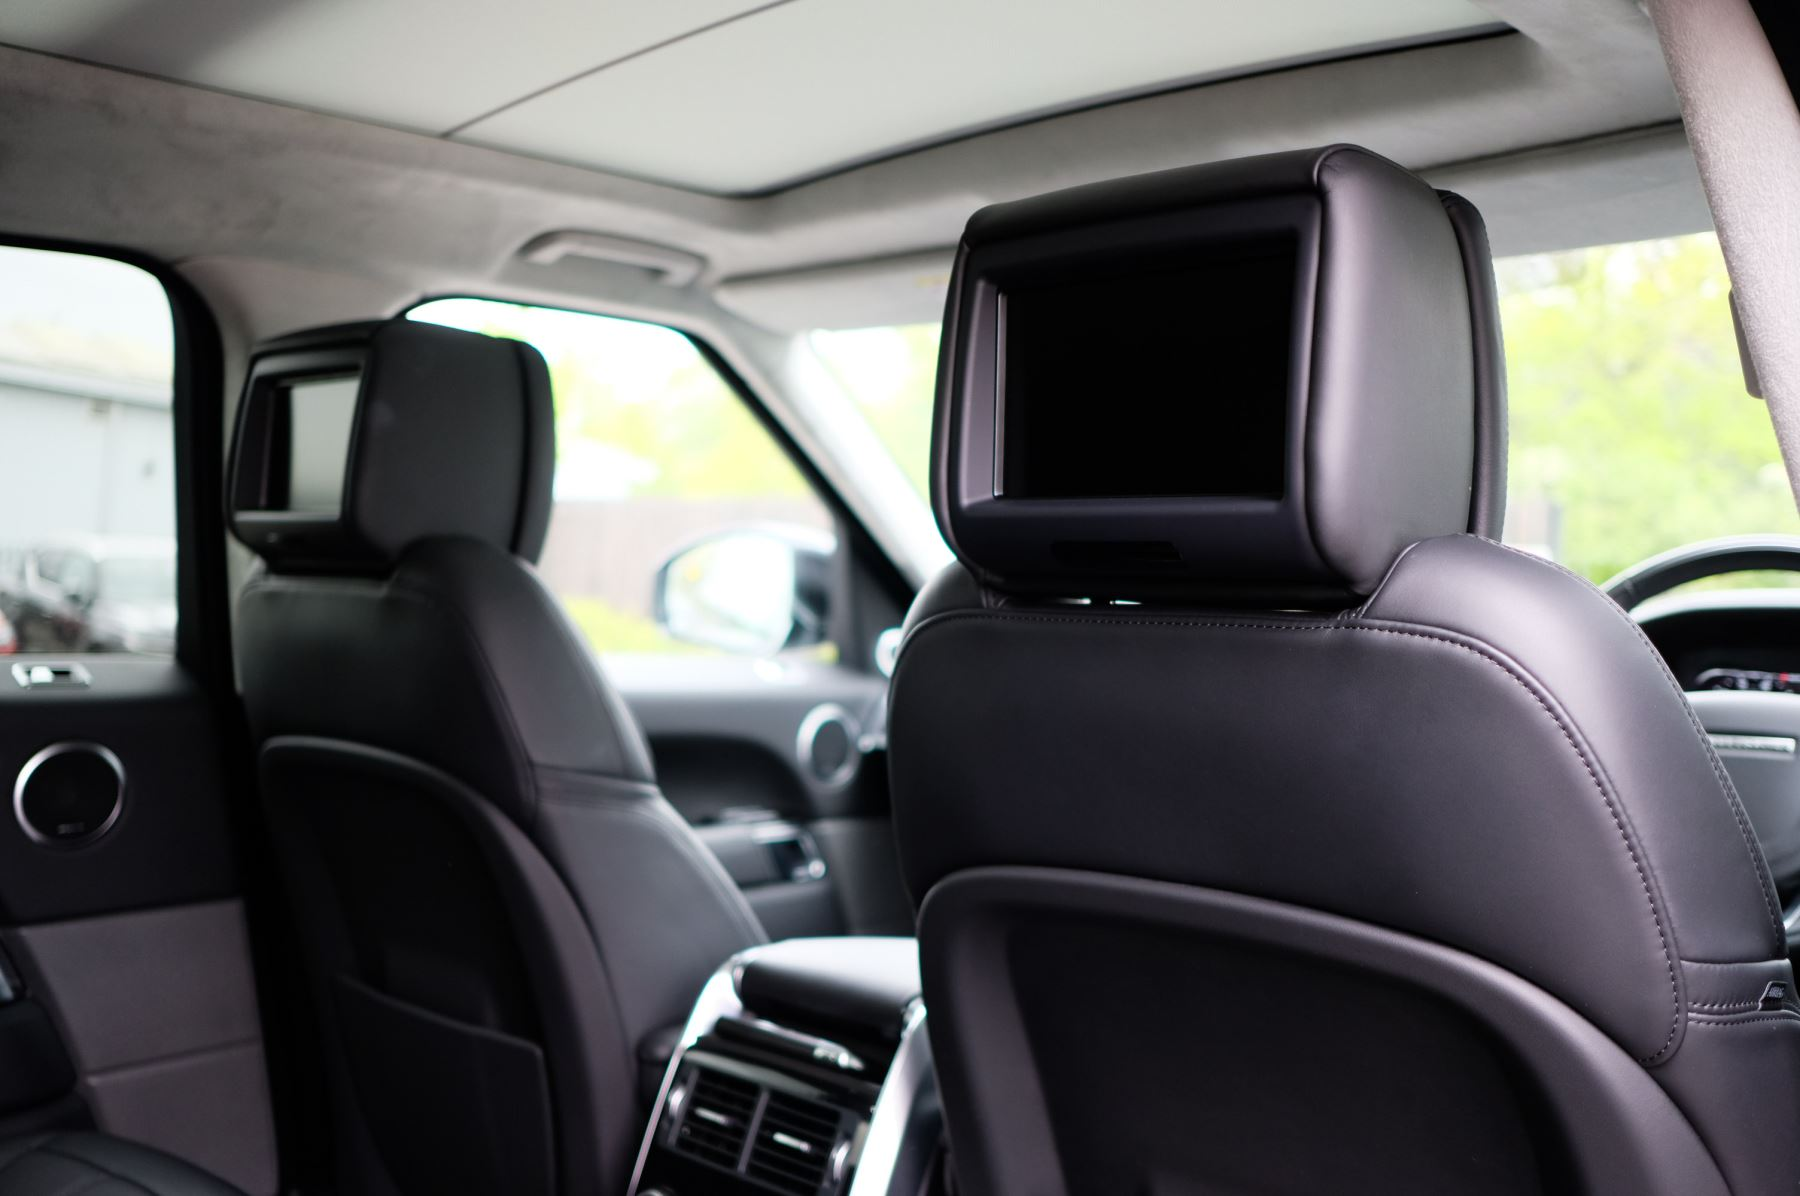 Land Rover Range Rover Sport 3.0 SDV6 Autobiography Dynamic 5dr [7 Seat] - Rear Seat Entertainment - 21 Inch Alloys image 22